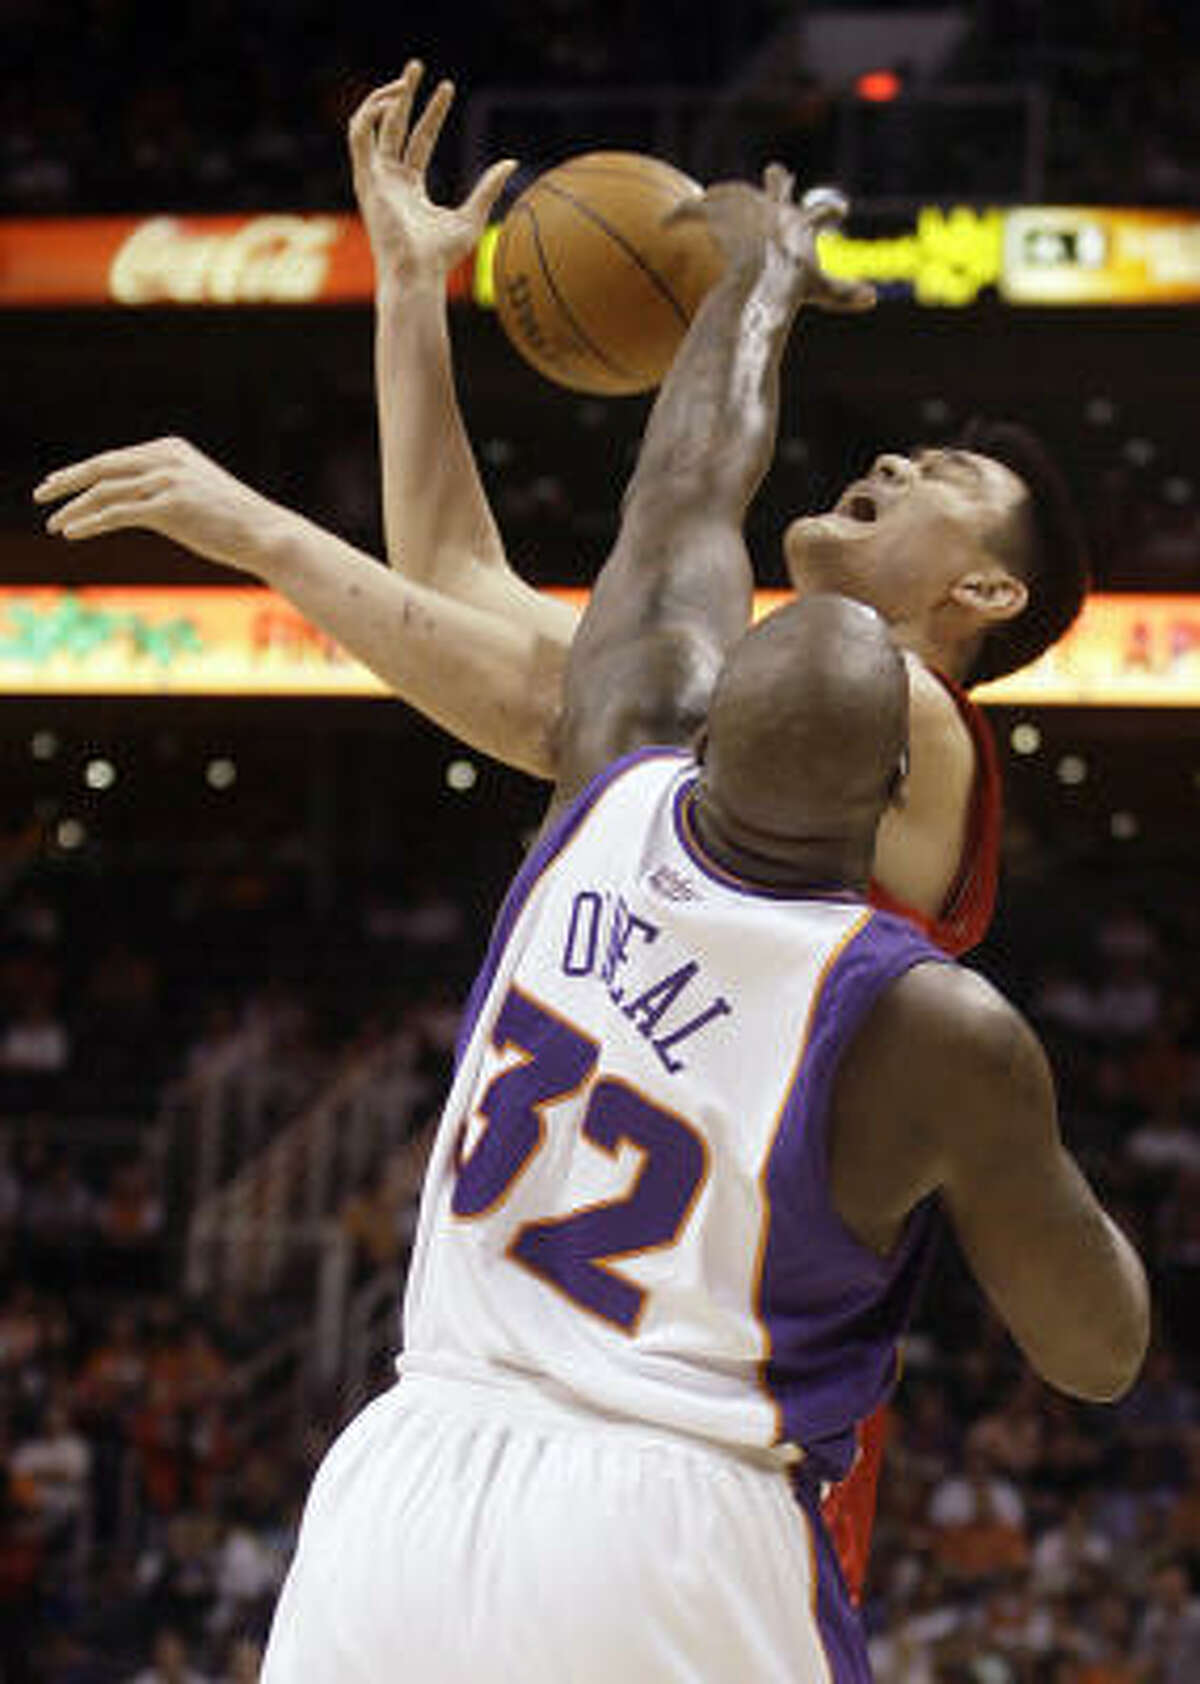 Yao Ming is fouled by Phoenix Suns center Shaquille O'Neal, bottom, as he attempts to shoot in the first quarter.